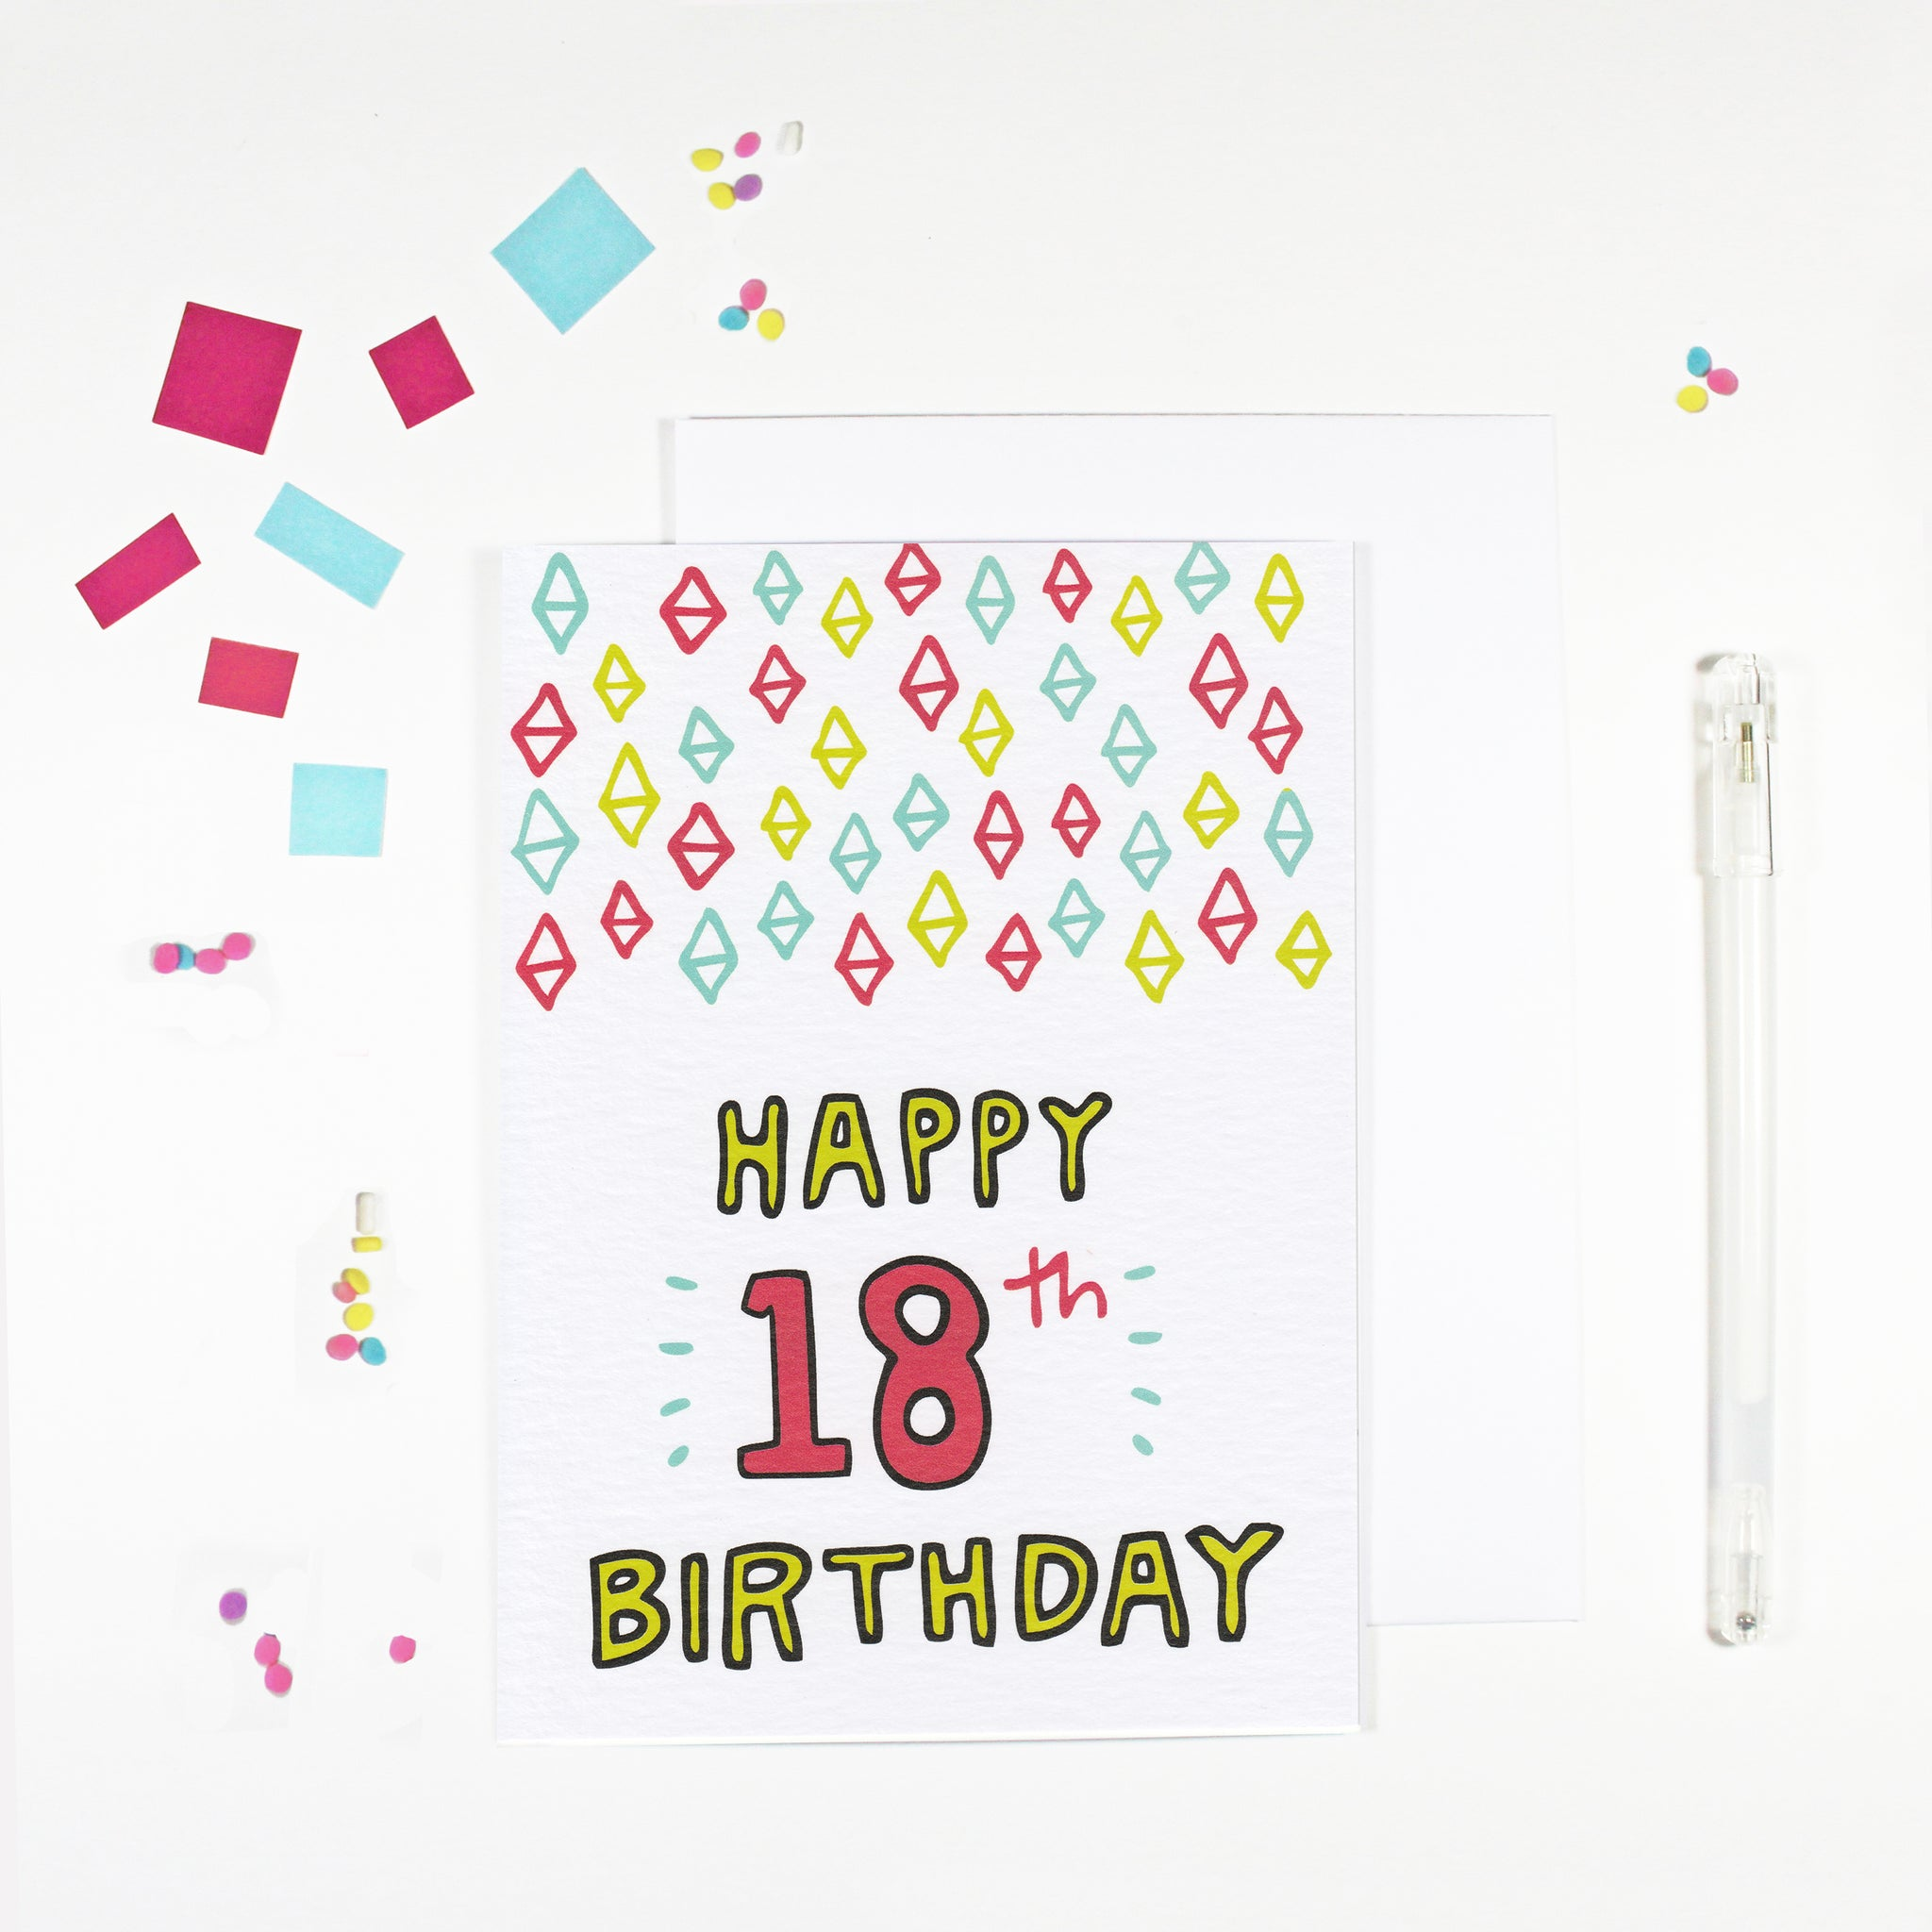 Happy 18th Birthday Card Choice Image Free Birthday Cards